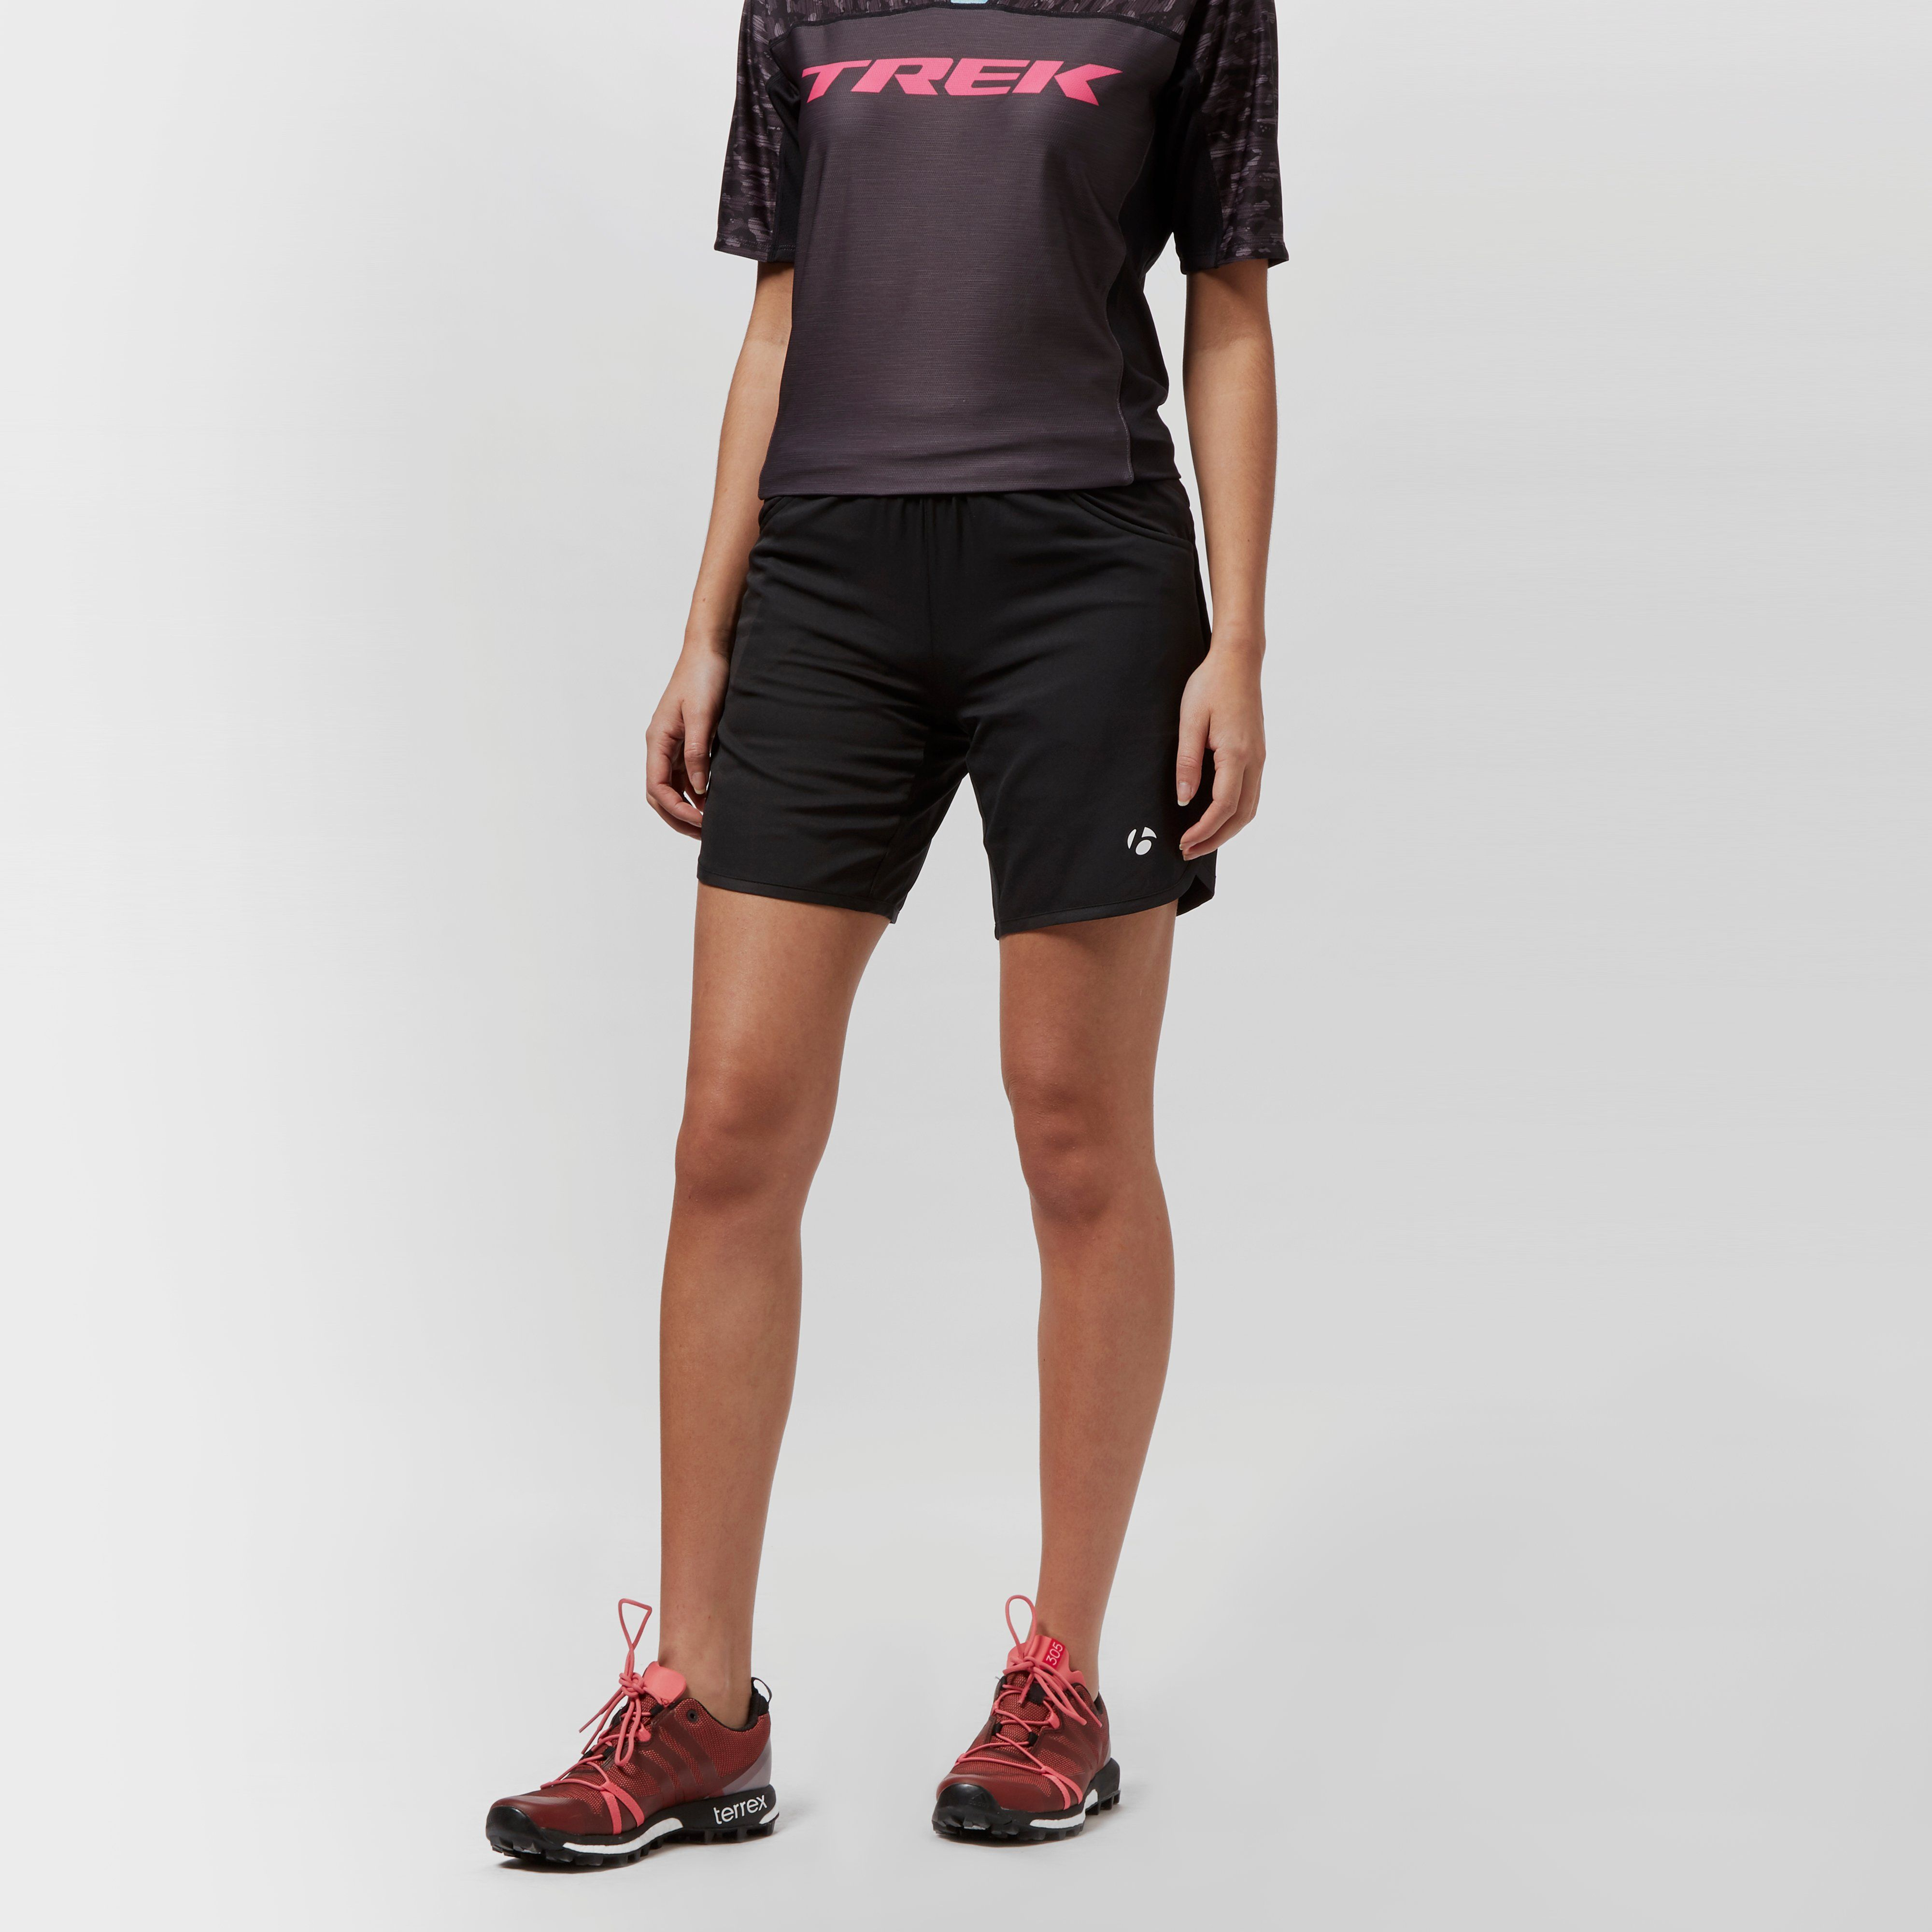 BONTRAGER Women's Kalia Cycle Shorts